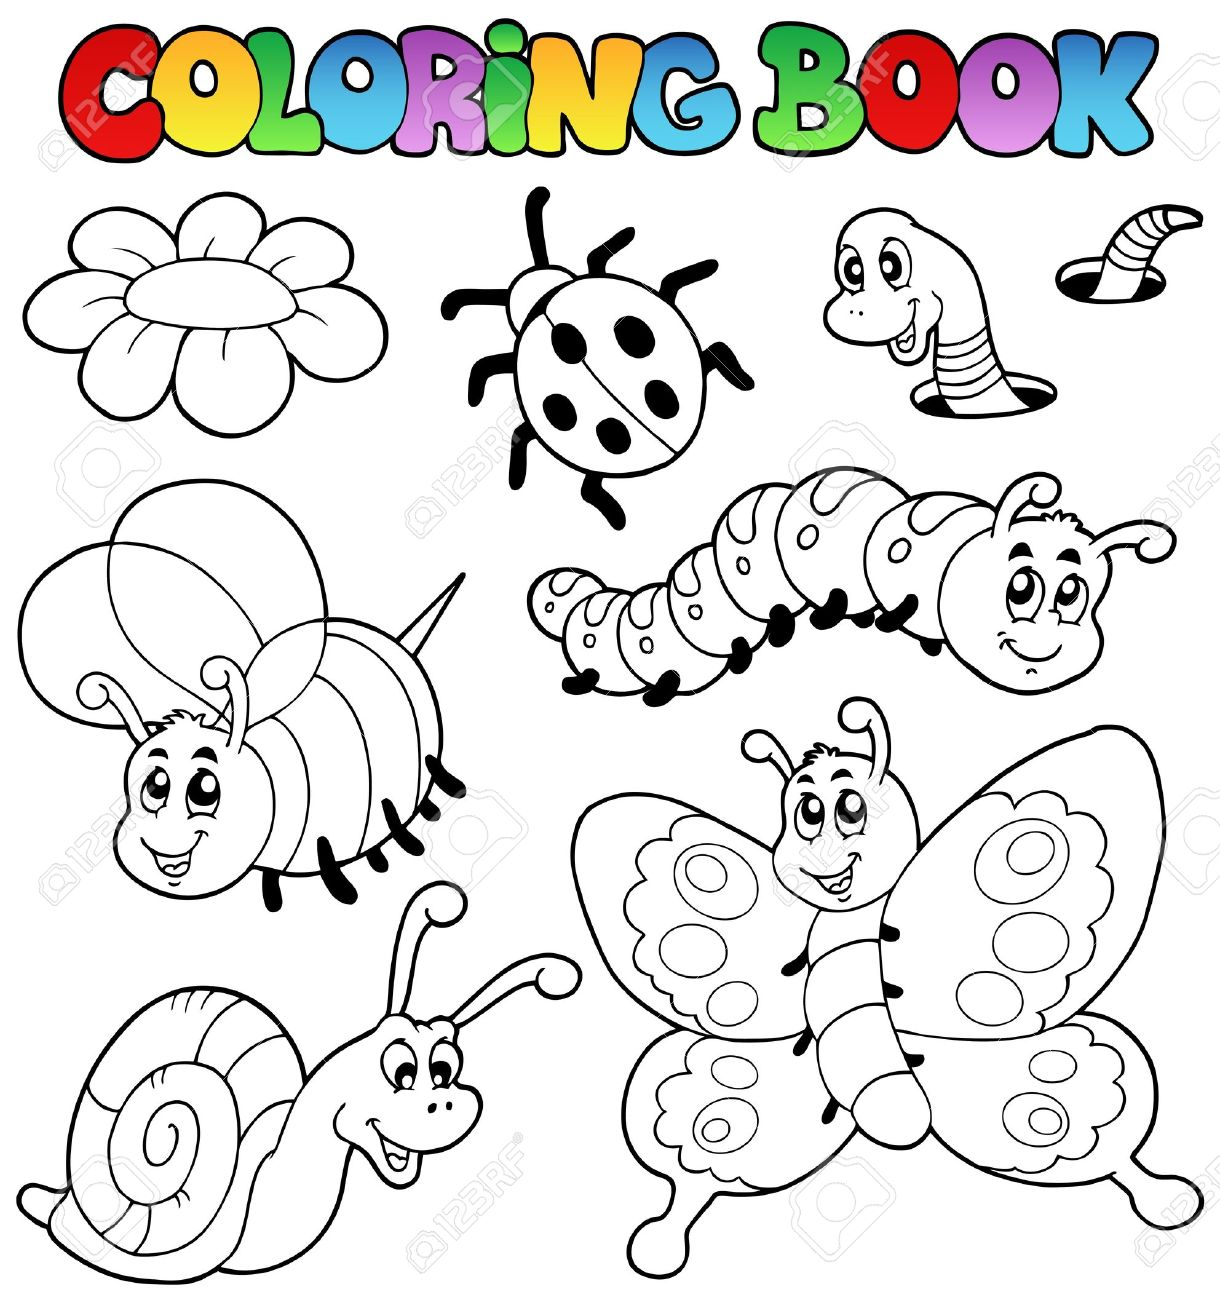 coloring book with small animals 2 vector illustration stock vector 9443073